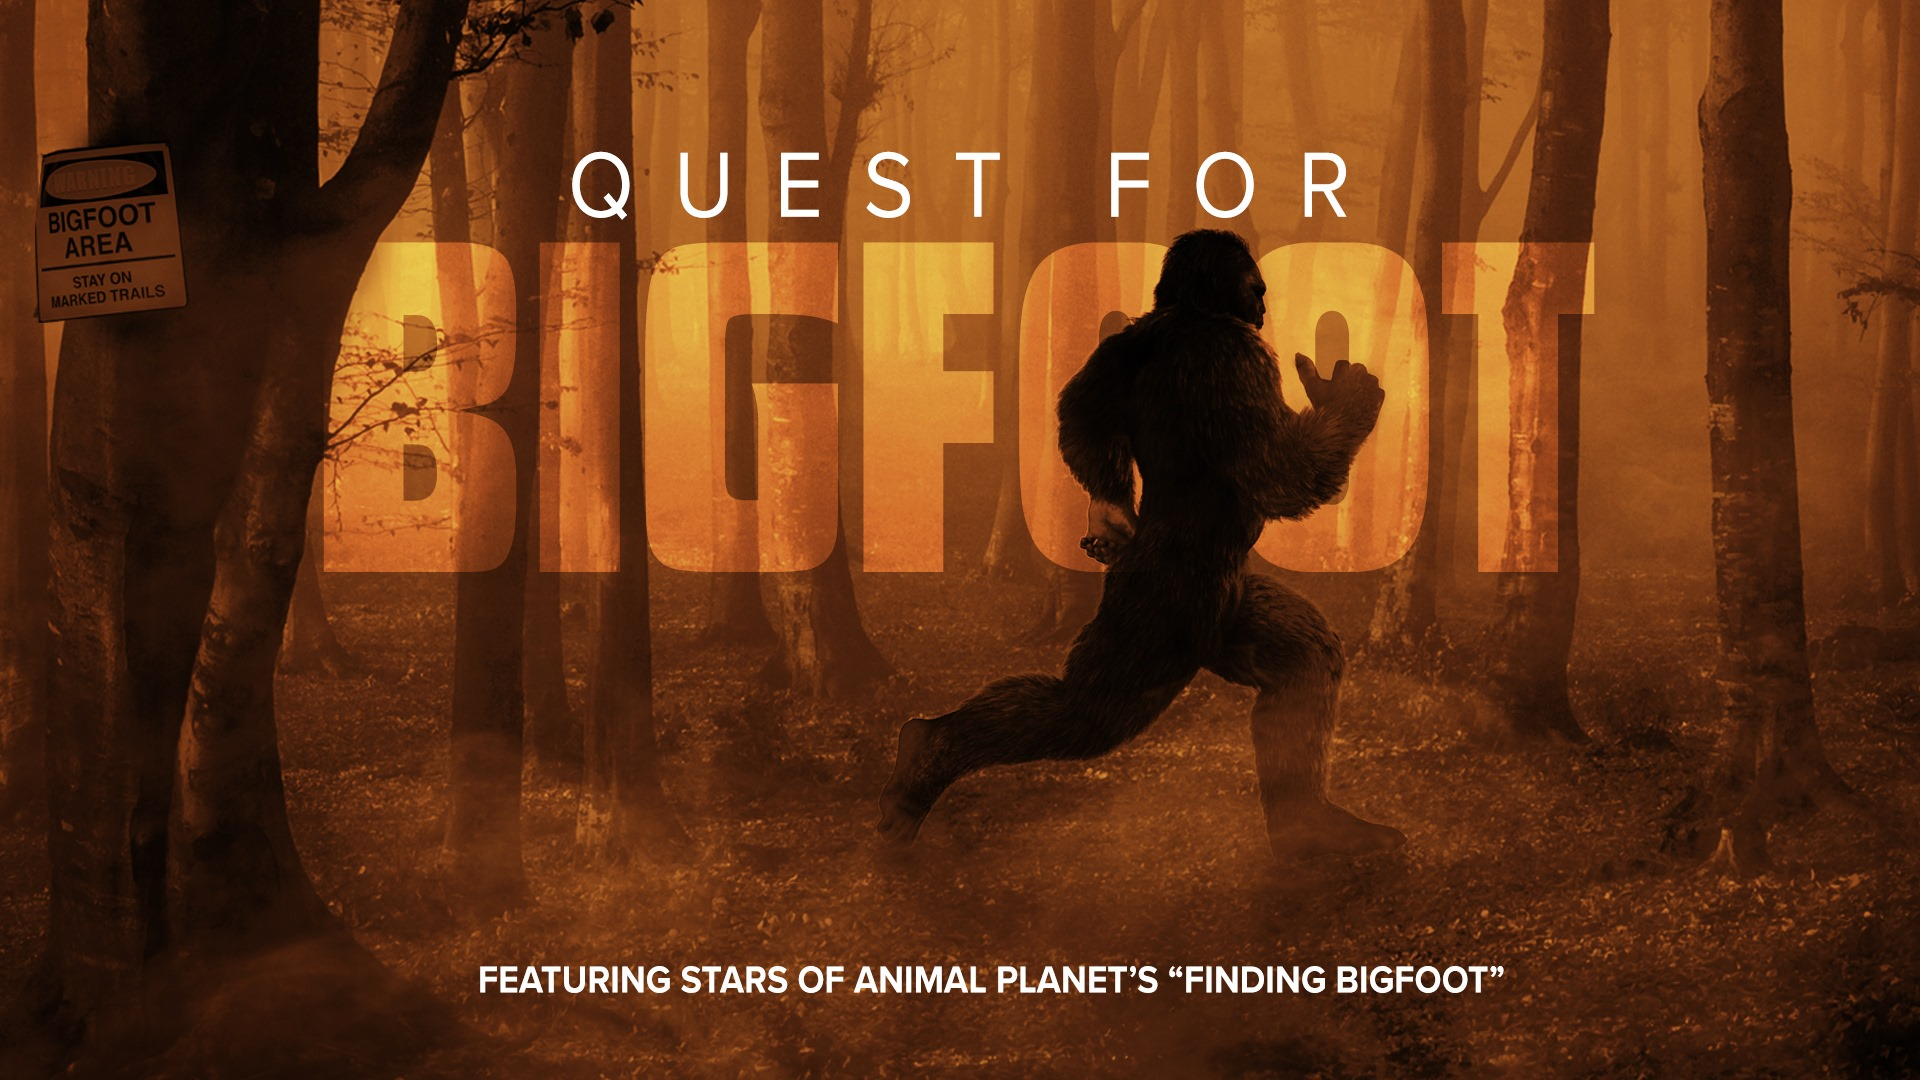 Quest for Bigfoot